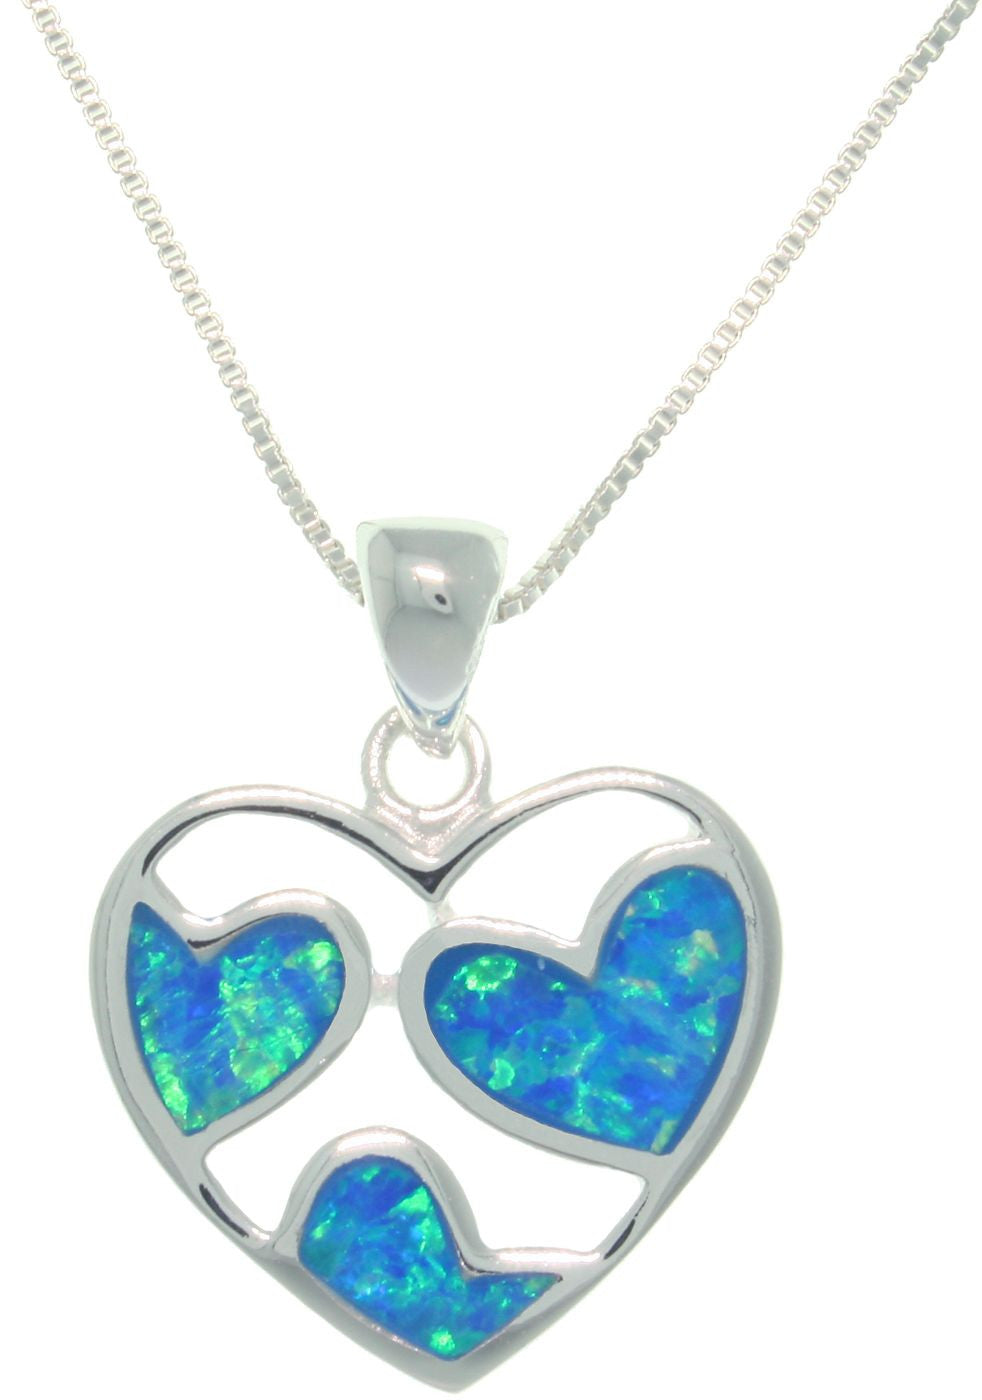 Jewelry Trends Sterling Silver Loving Hearts Created Opal Pendant With 18 Inch Chain Necklace